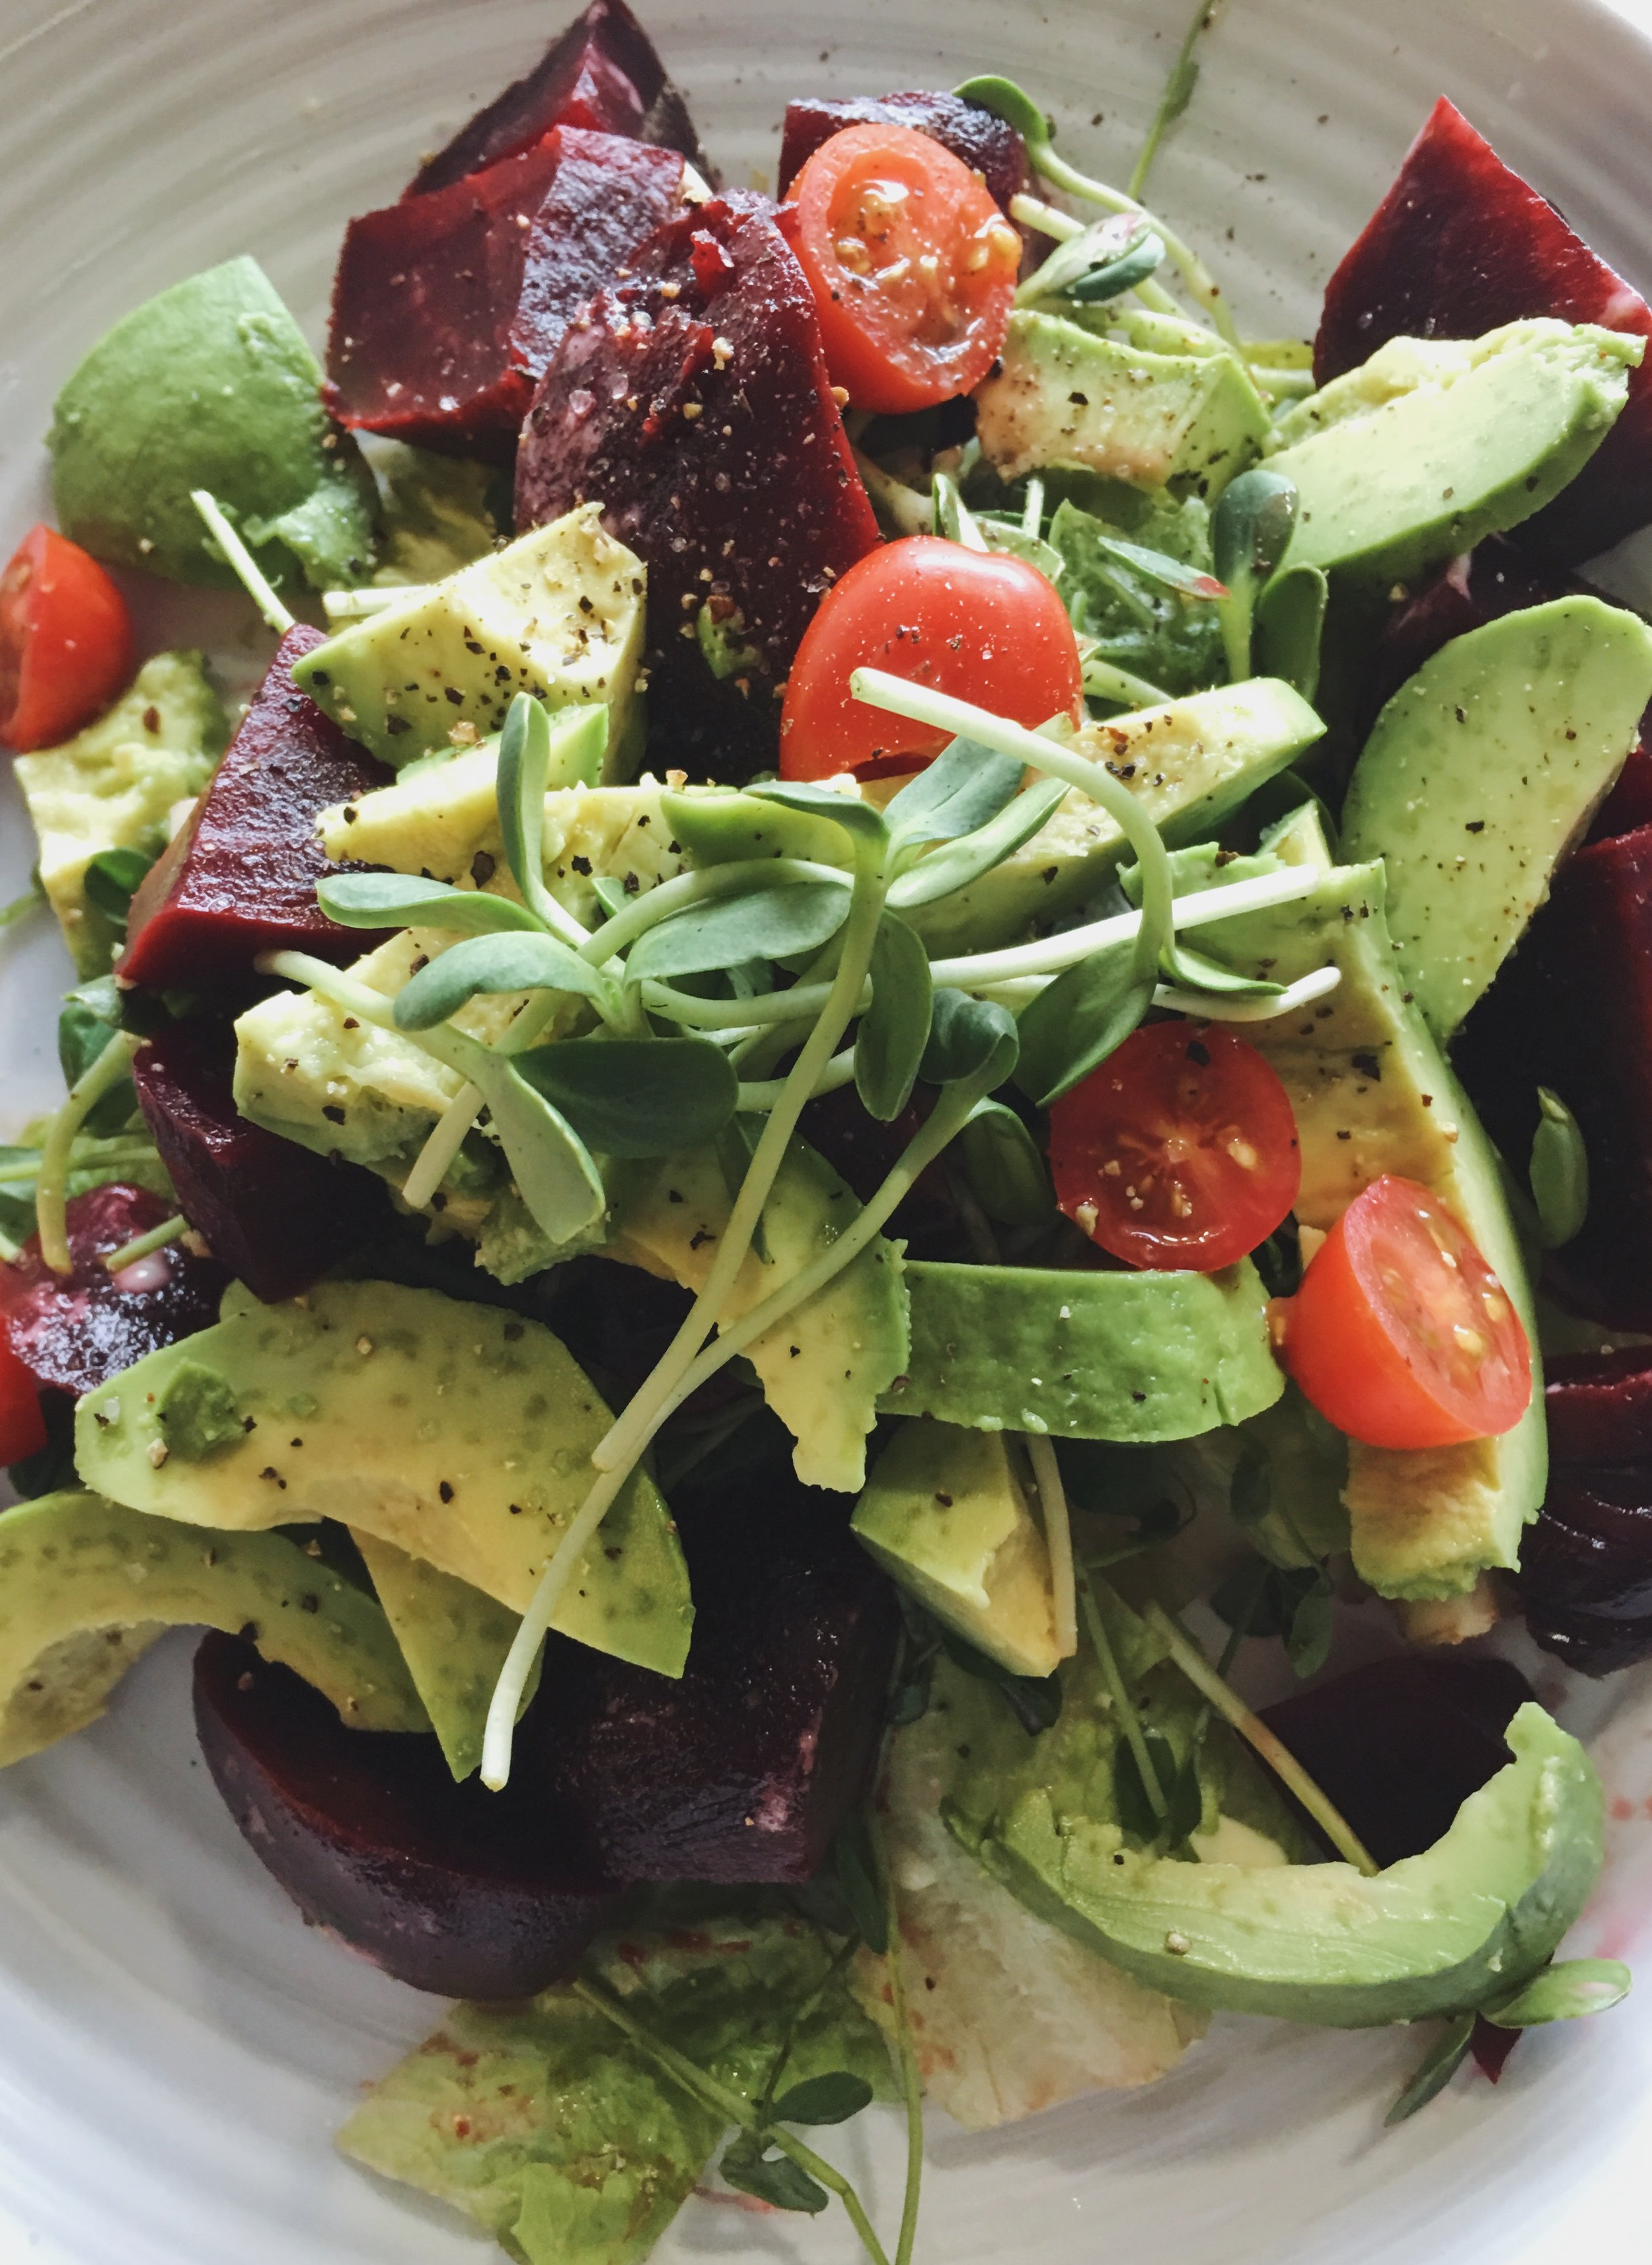 April 22nd - A plant based diet